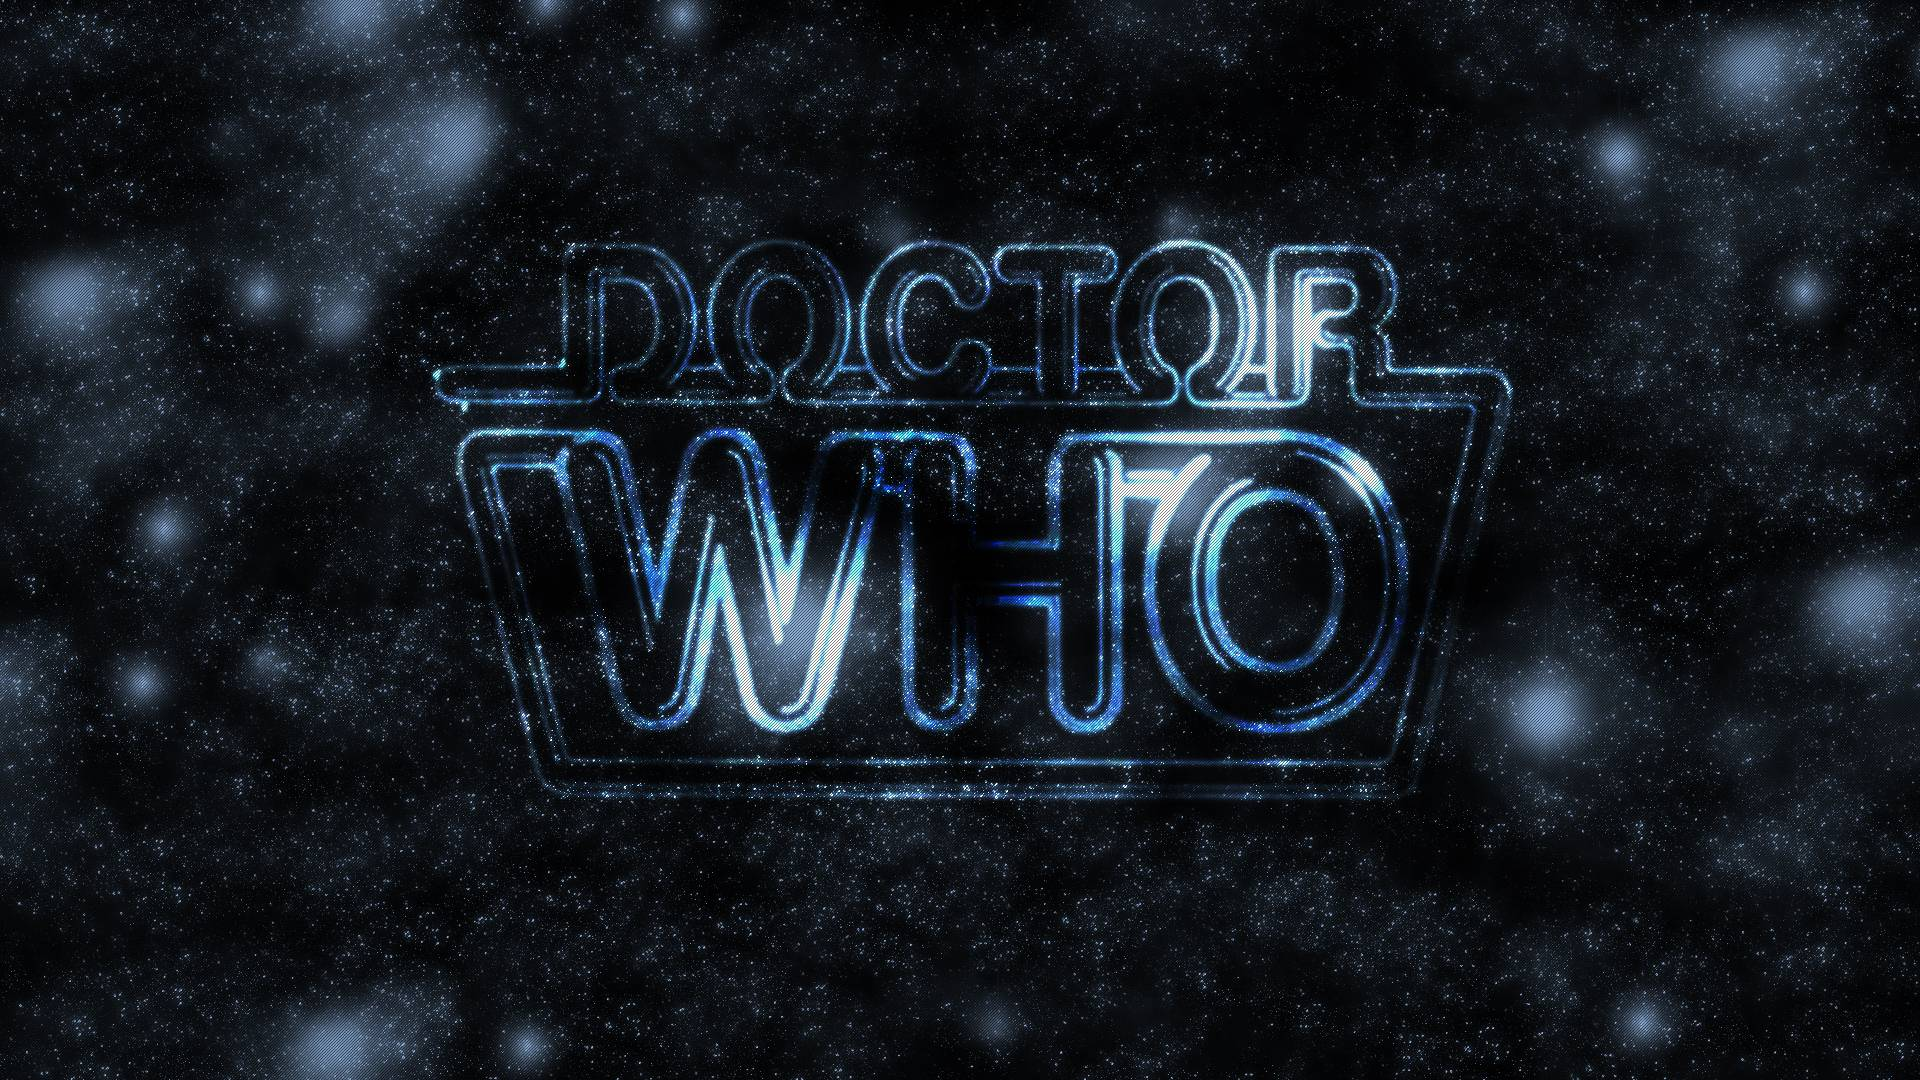 Doctor Who Background Wallpaper Download Doctor Who HD Wallpapers